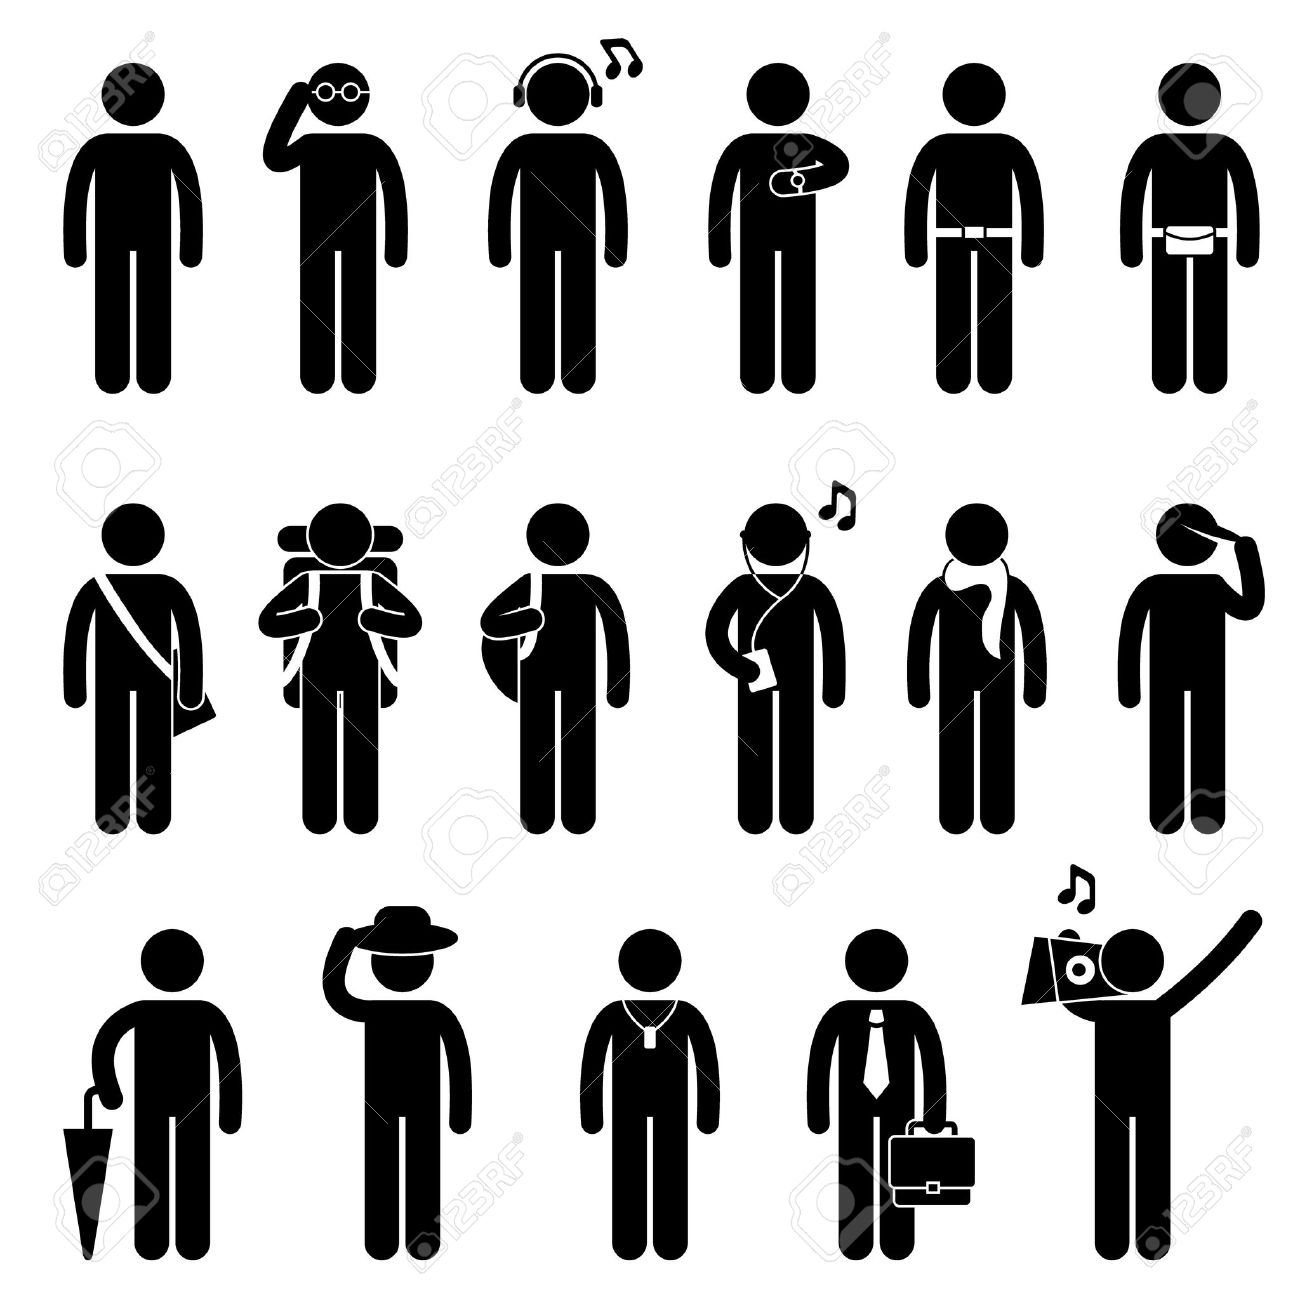 People Man Male Fashion Wear Body Accessories Icon Symbol Sign Pictogram - 14446304